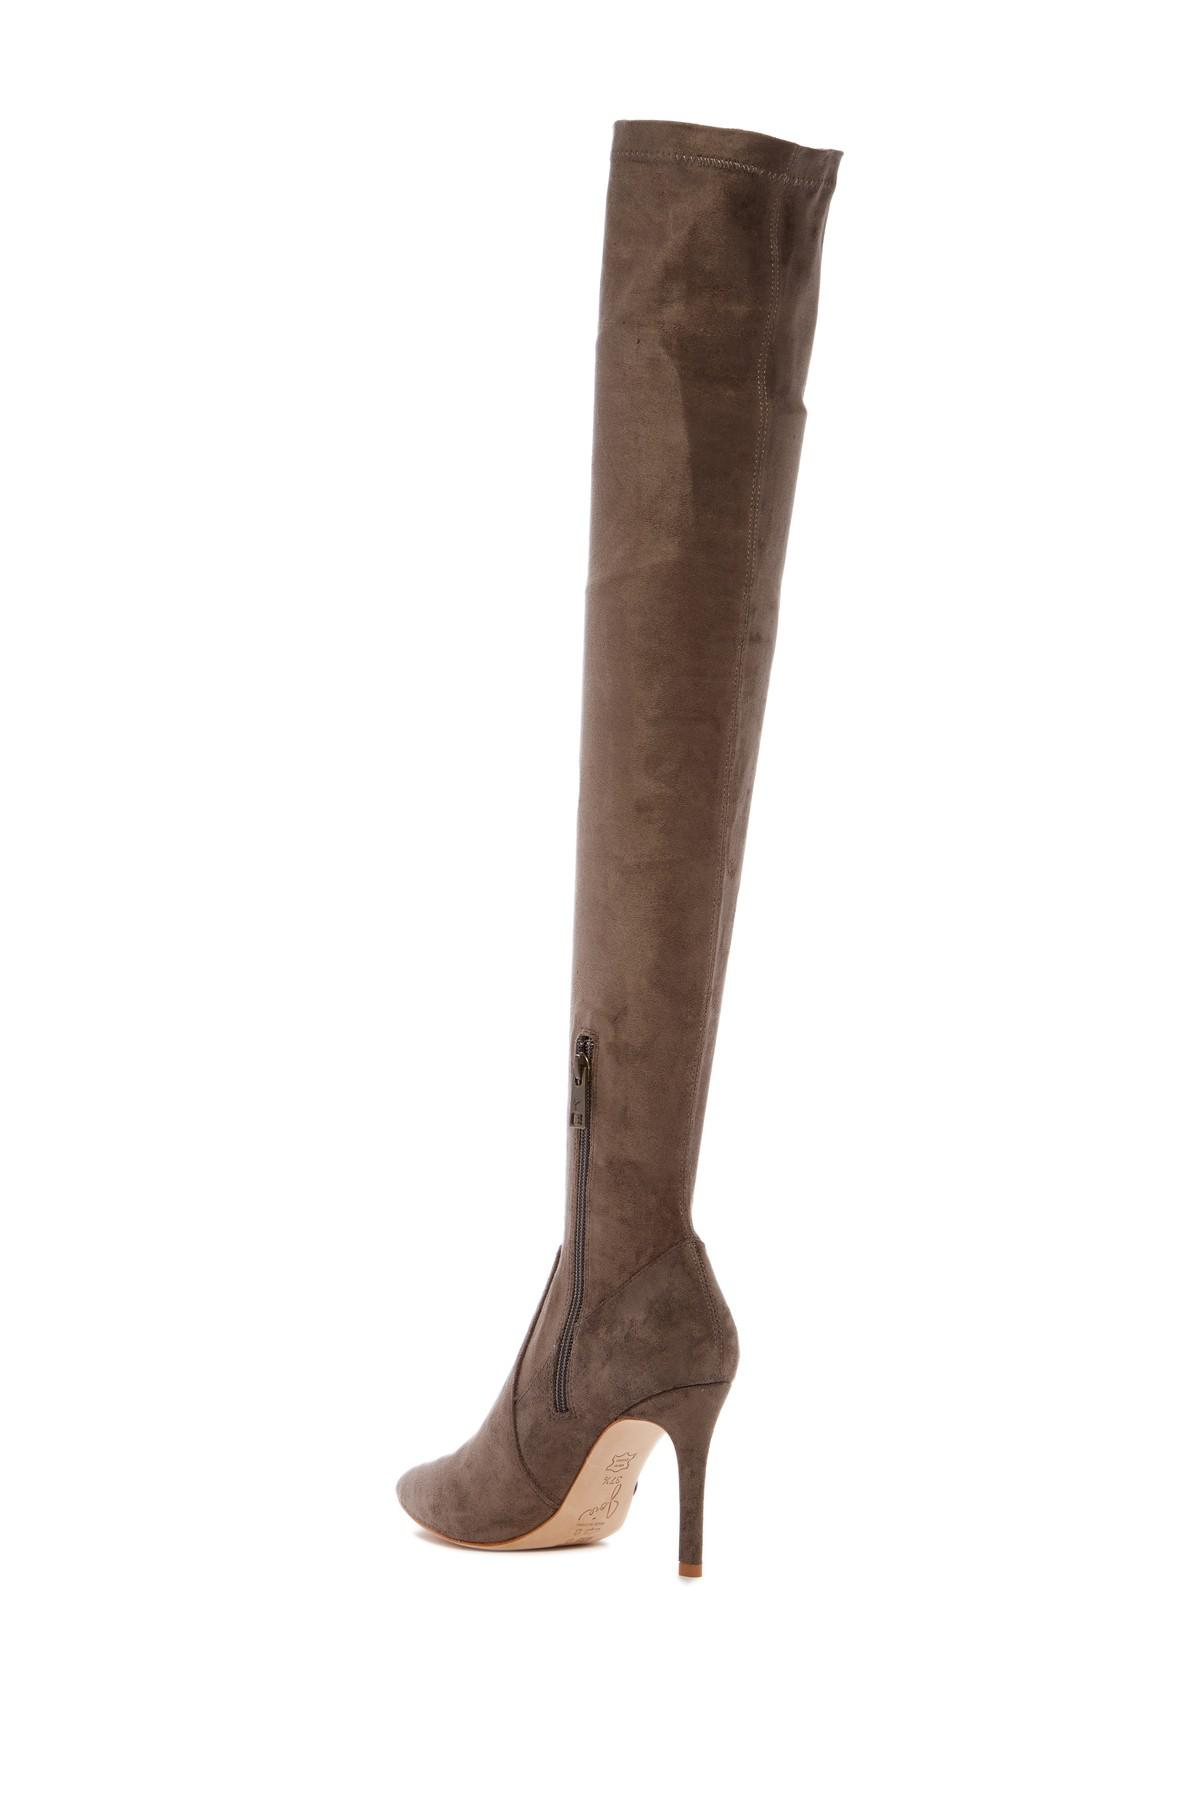 efdbe1322cb Lyst - Joie Jemina Over The Knee Boot - Narrow Calf in Brown